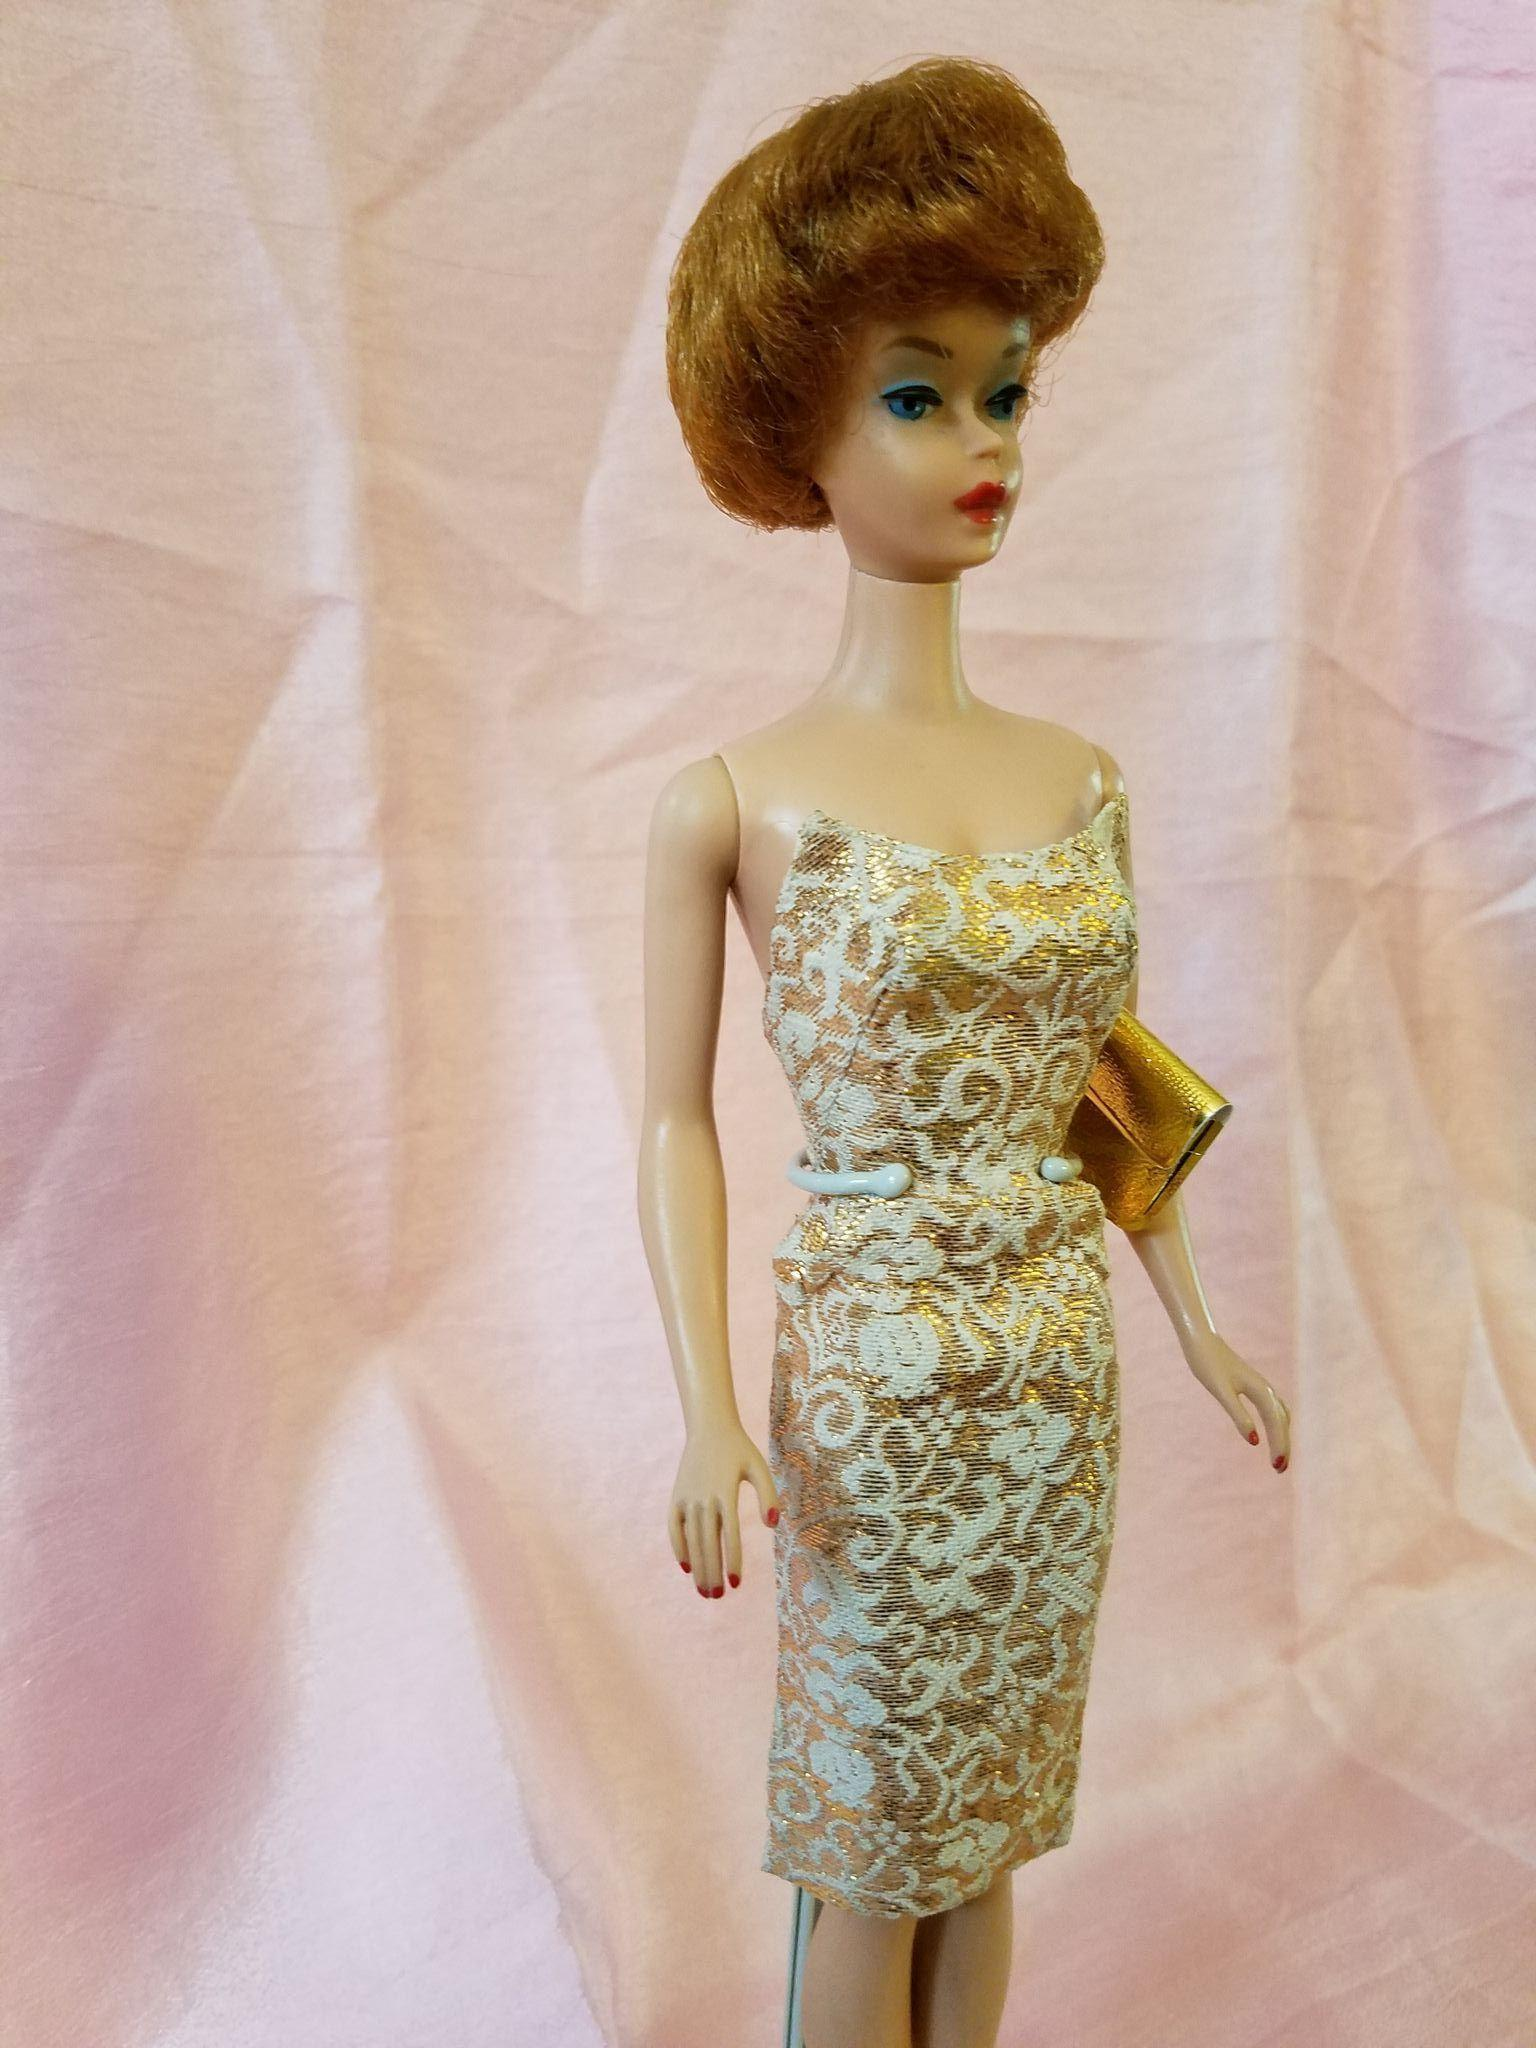 Titian Bubble Cut Barbie